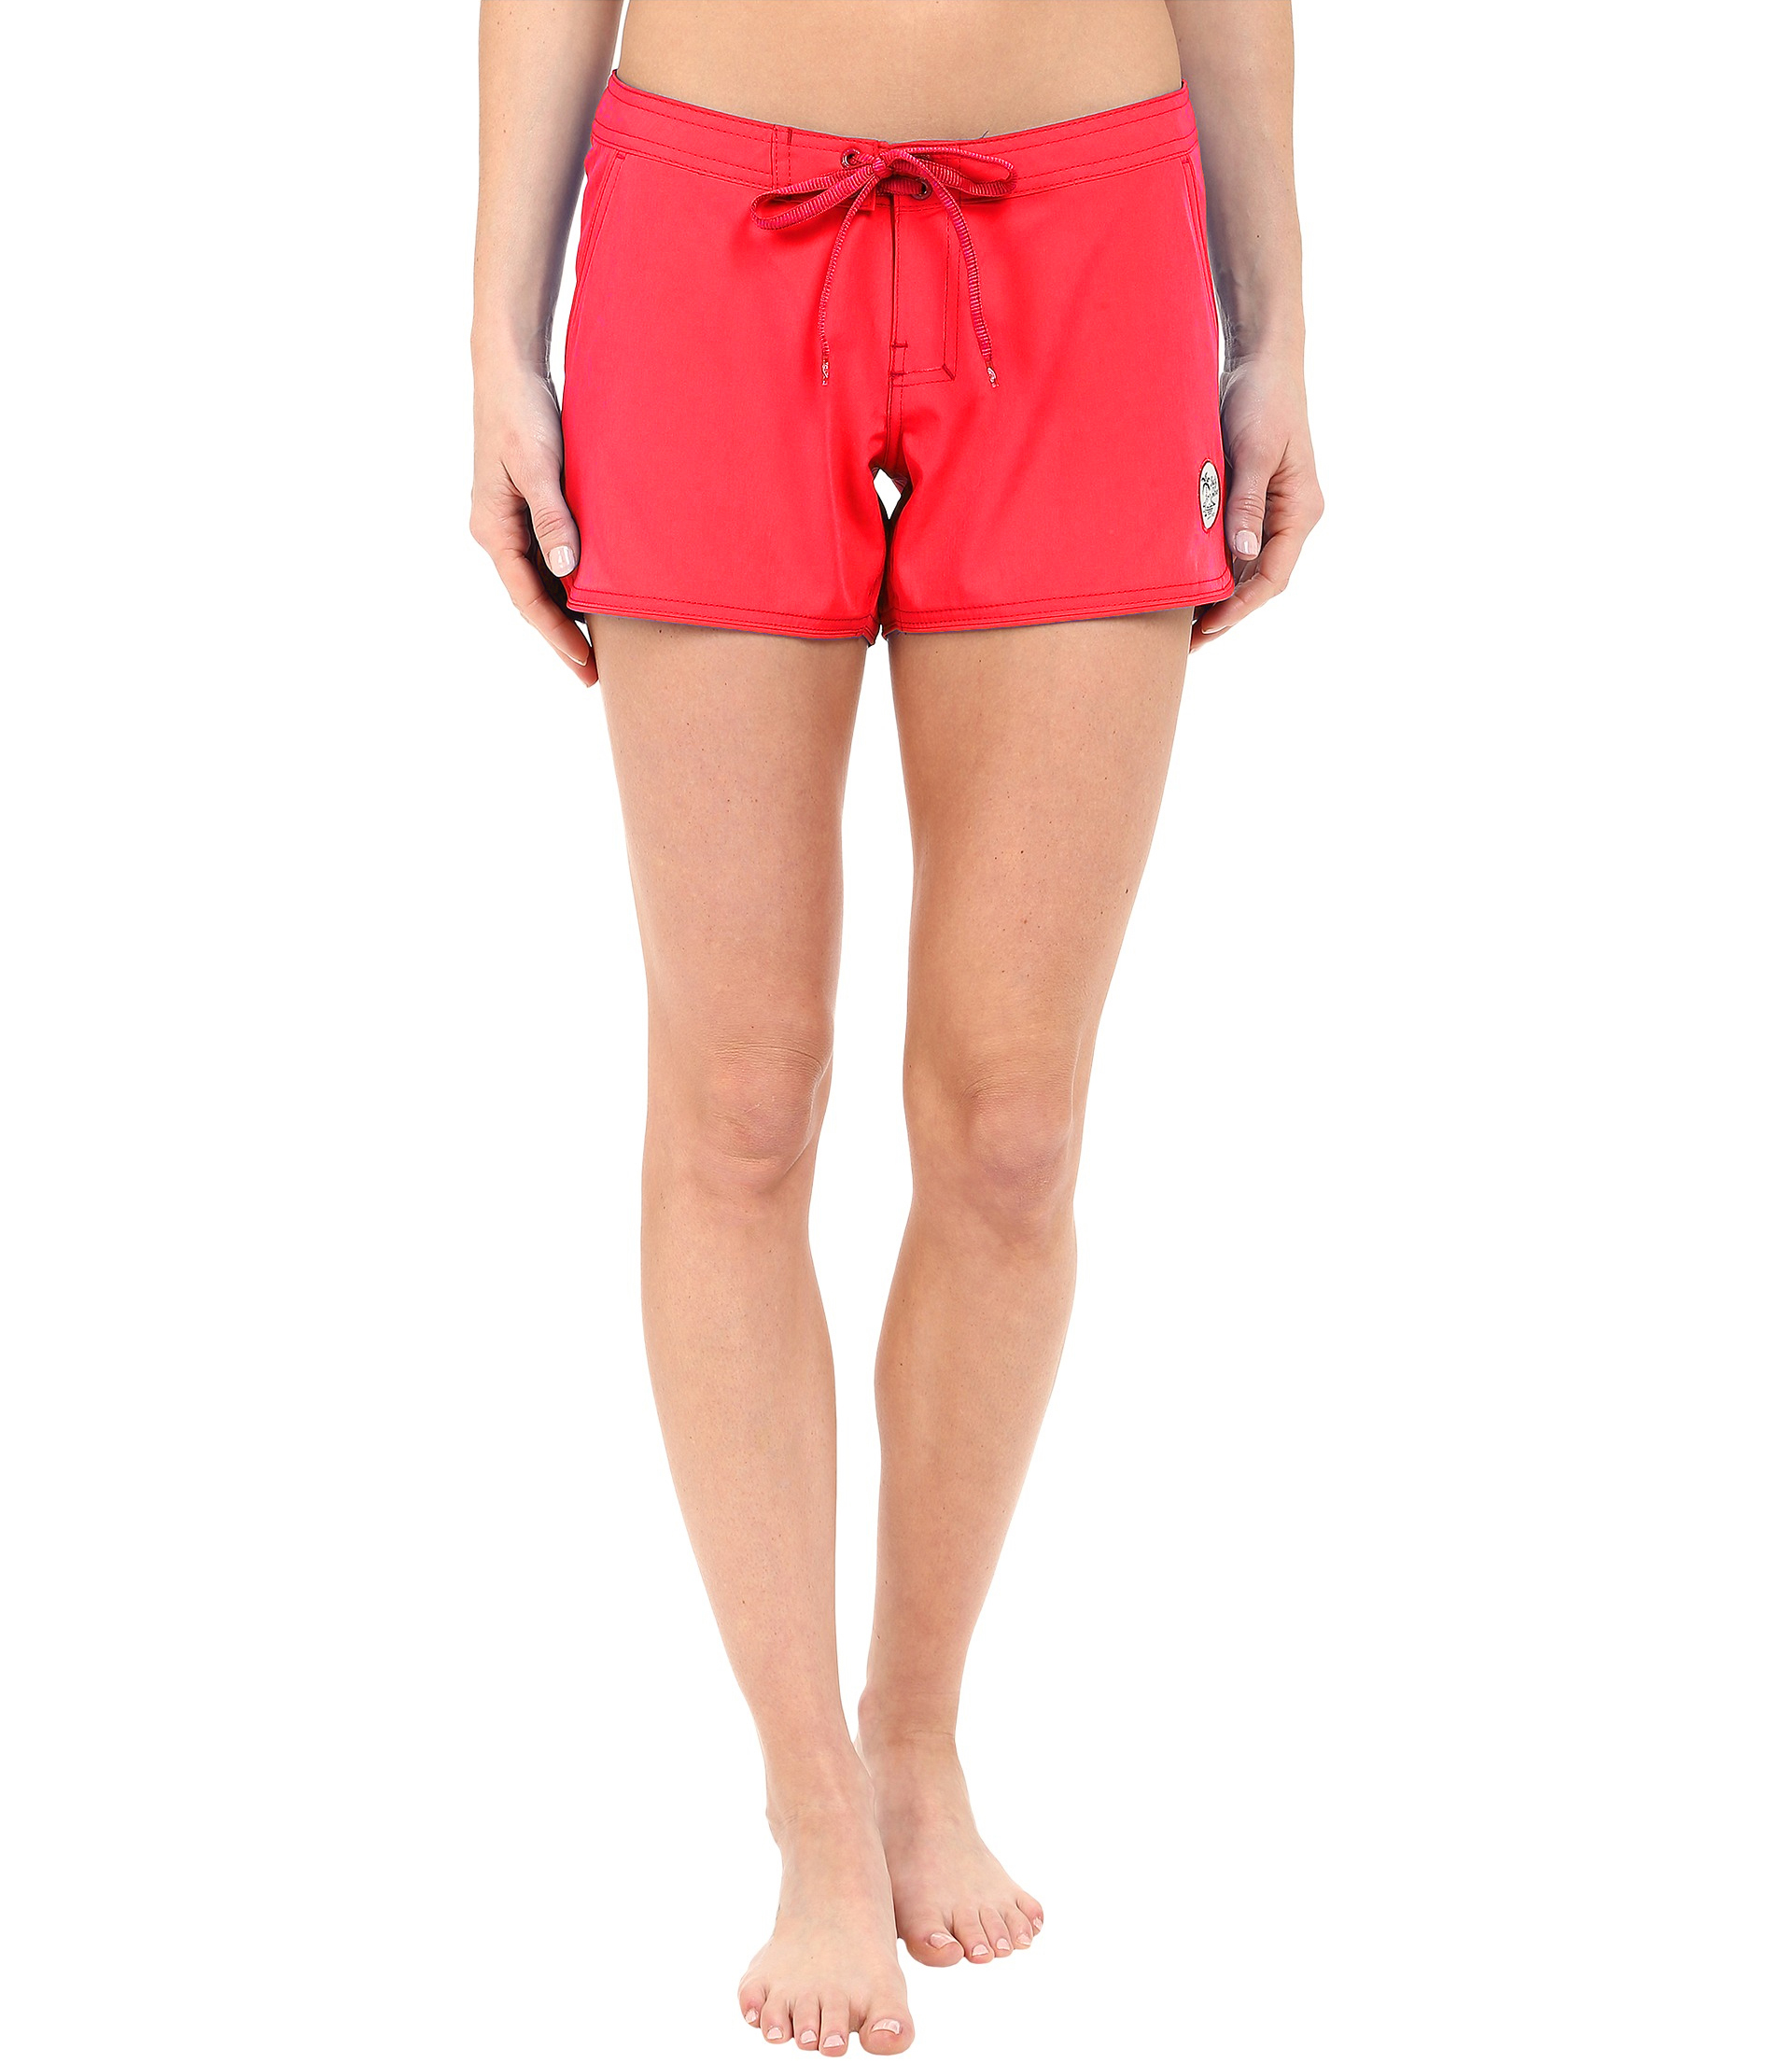 9c1748eed6e Body Glove Women s Blacks Beach Vapor 4 in Boardshort - Choose Sz color  Diva Medium. About this product. Picture 1 of 2  Picture 2 of 2